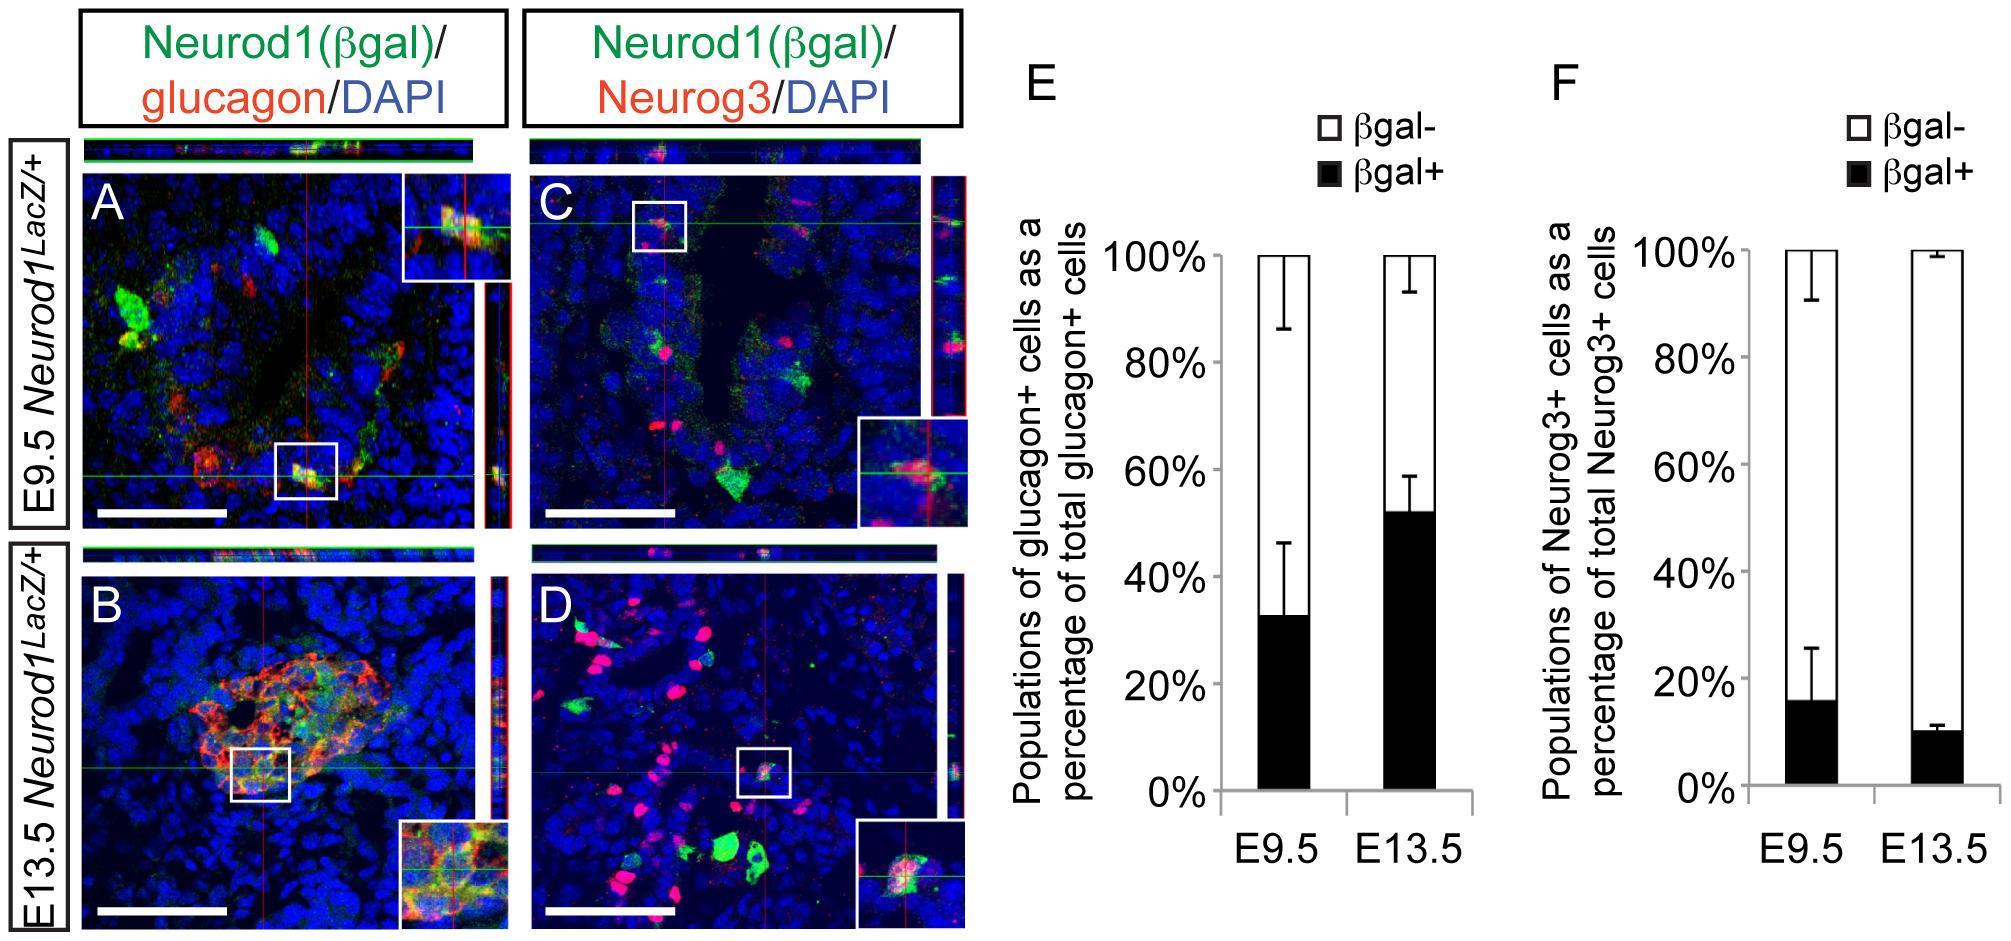 Neurod1 is expressed in a subset of endocrine progenitor cells.